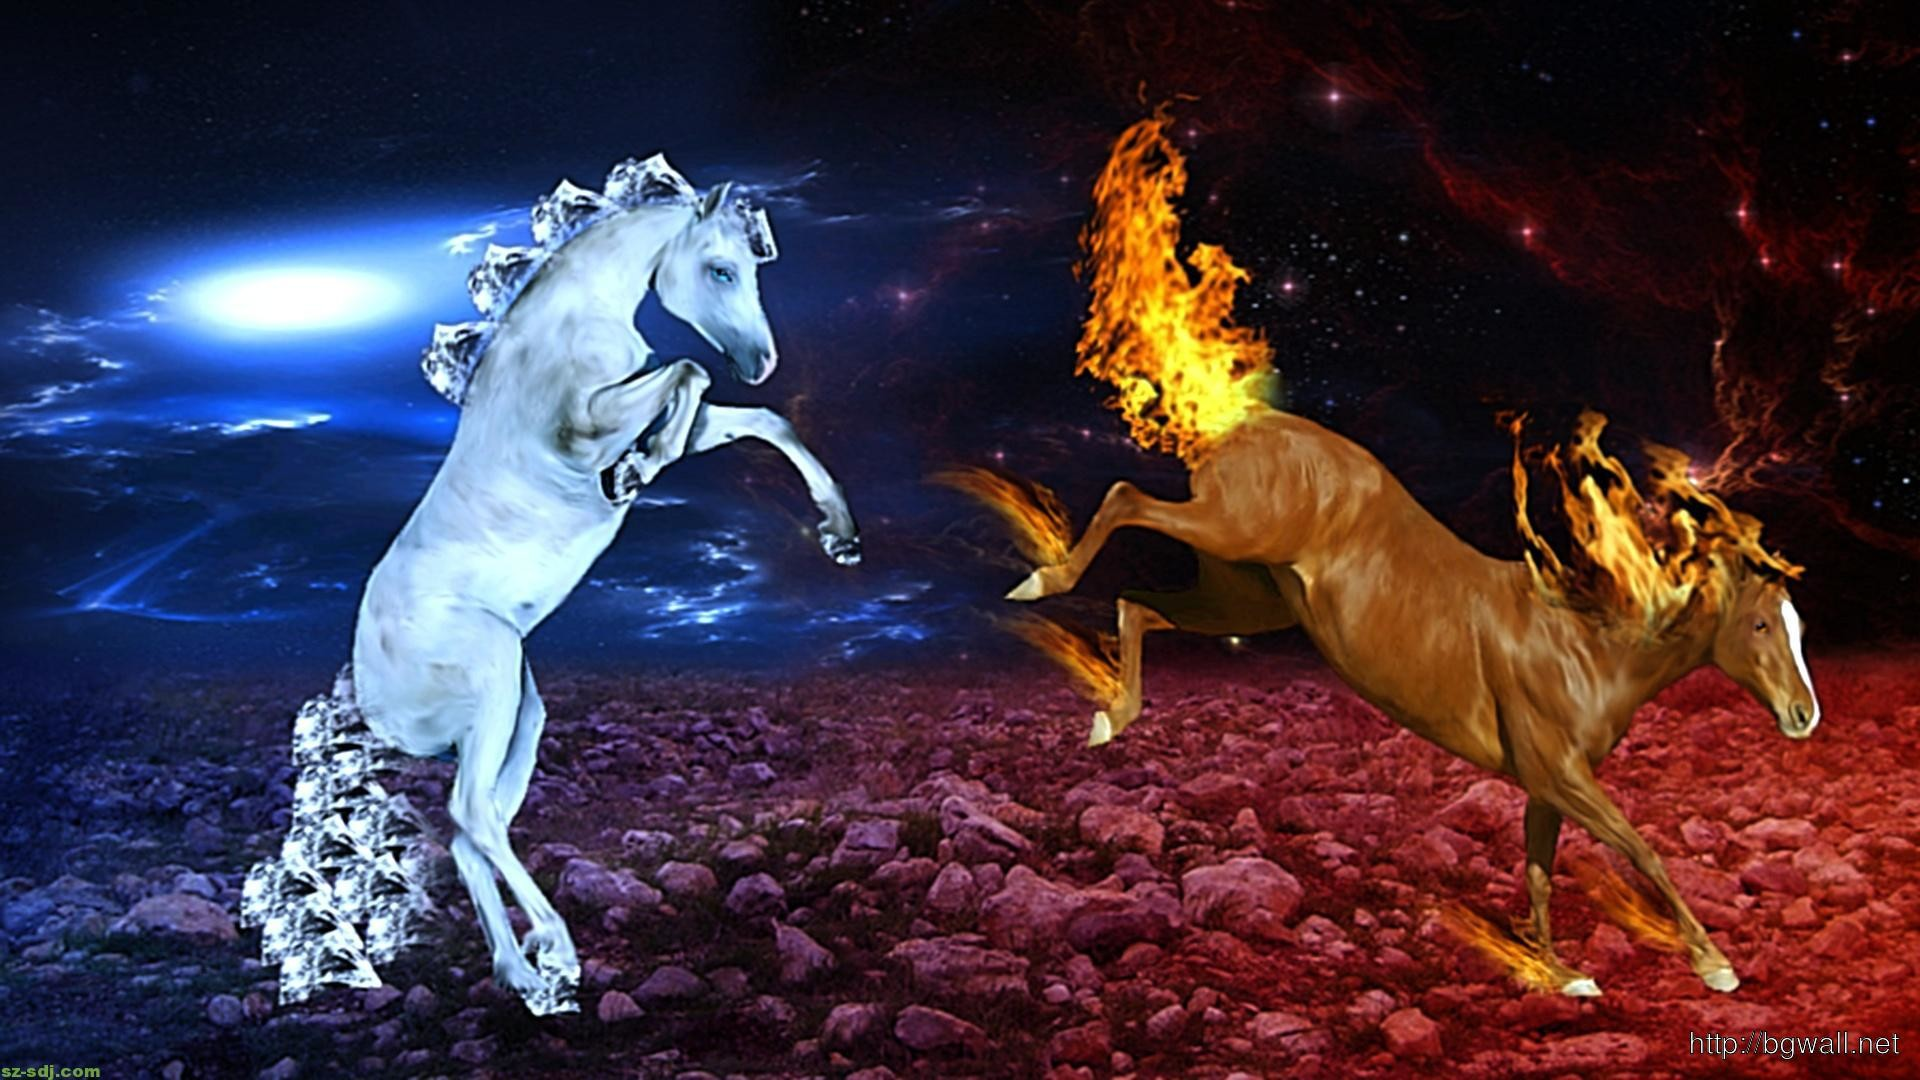 Horse Ice And Fire Cool Image Wallpaper